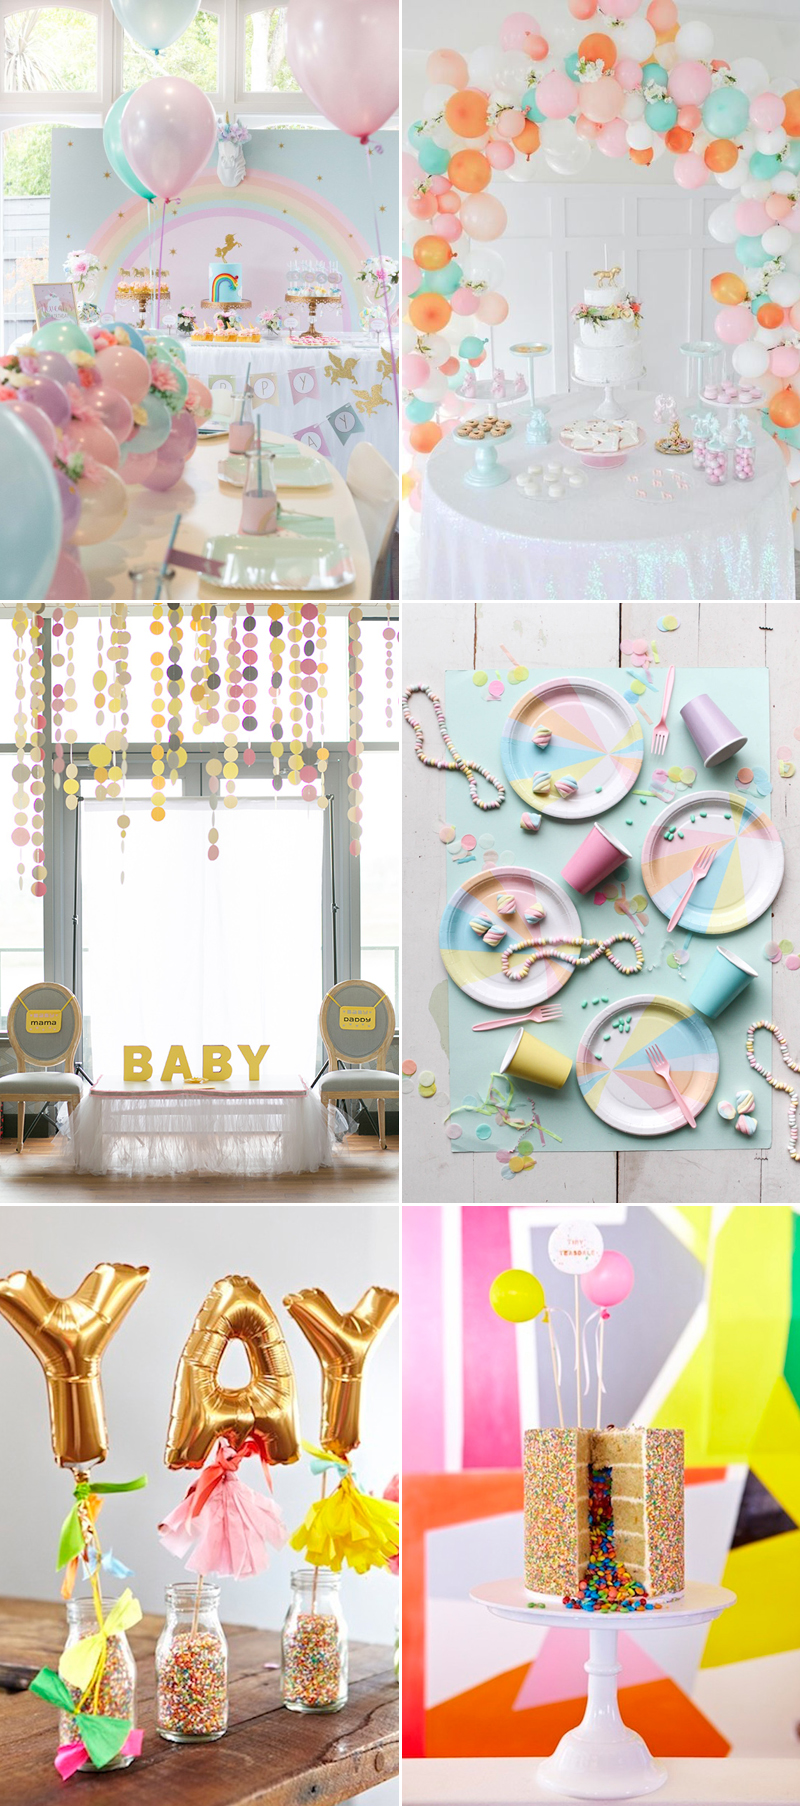 babyshower01-colorful